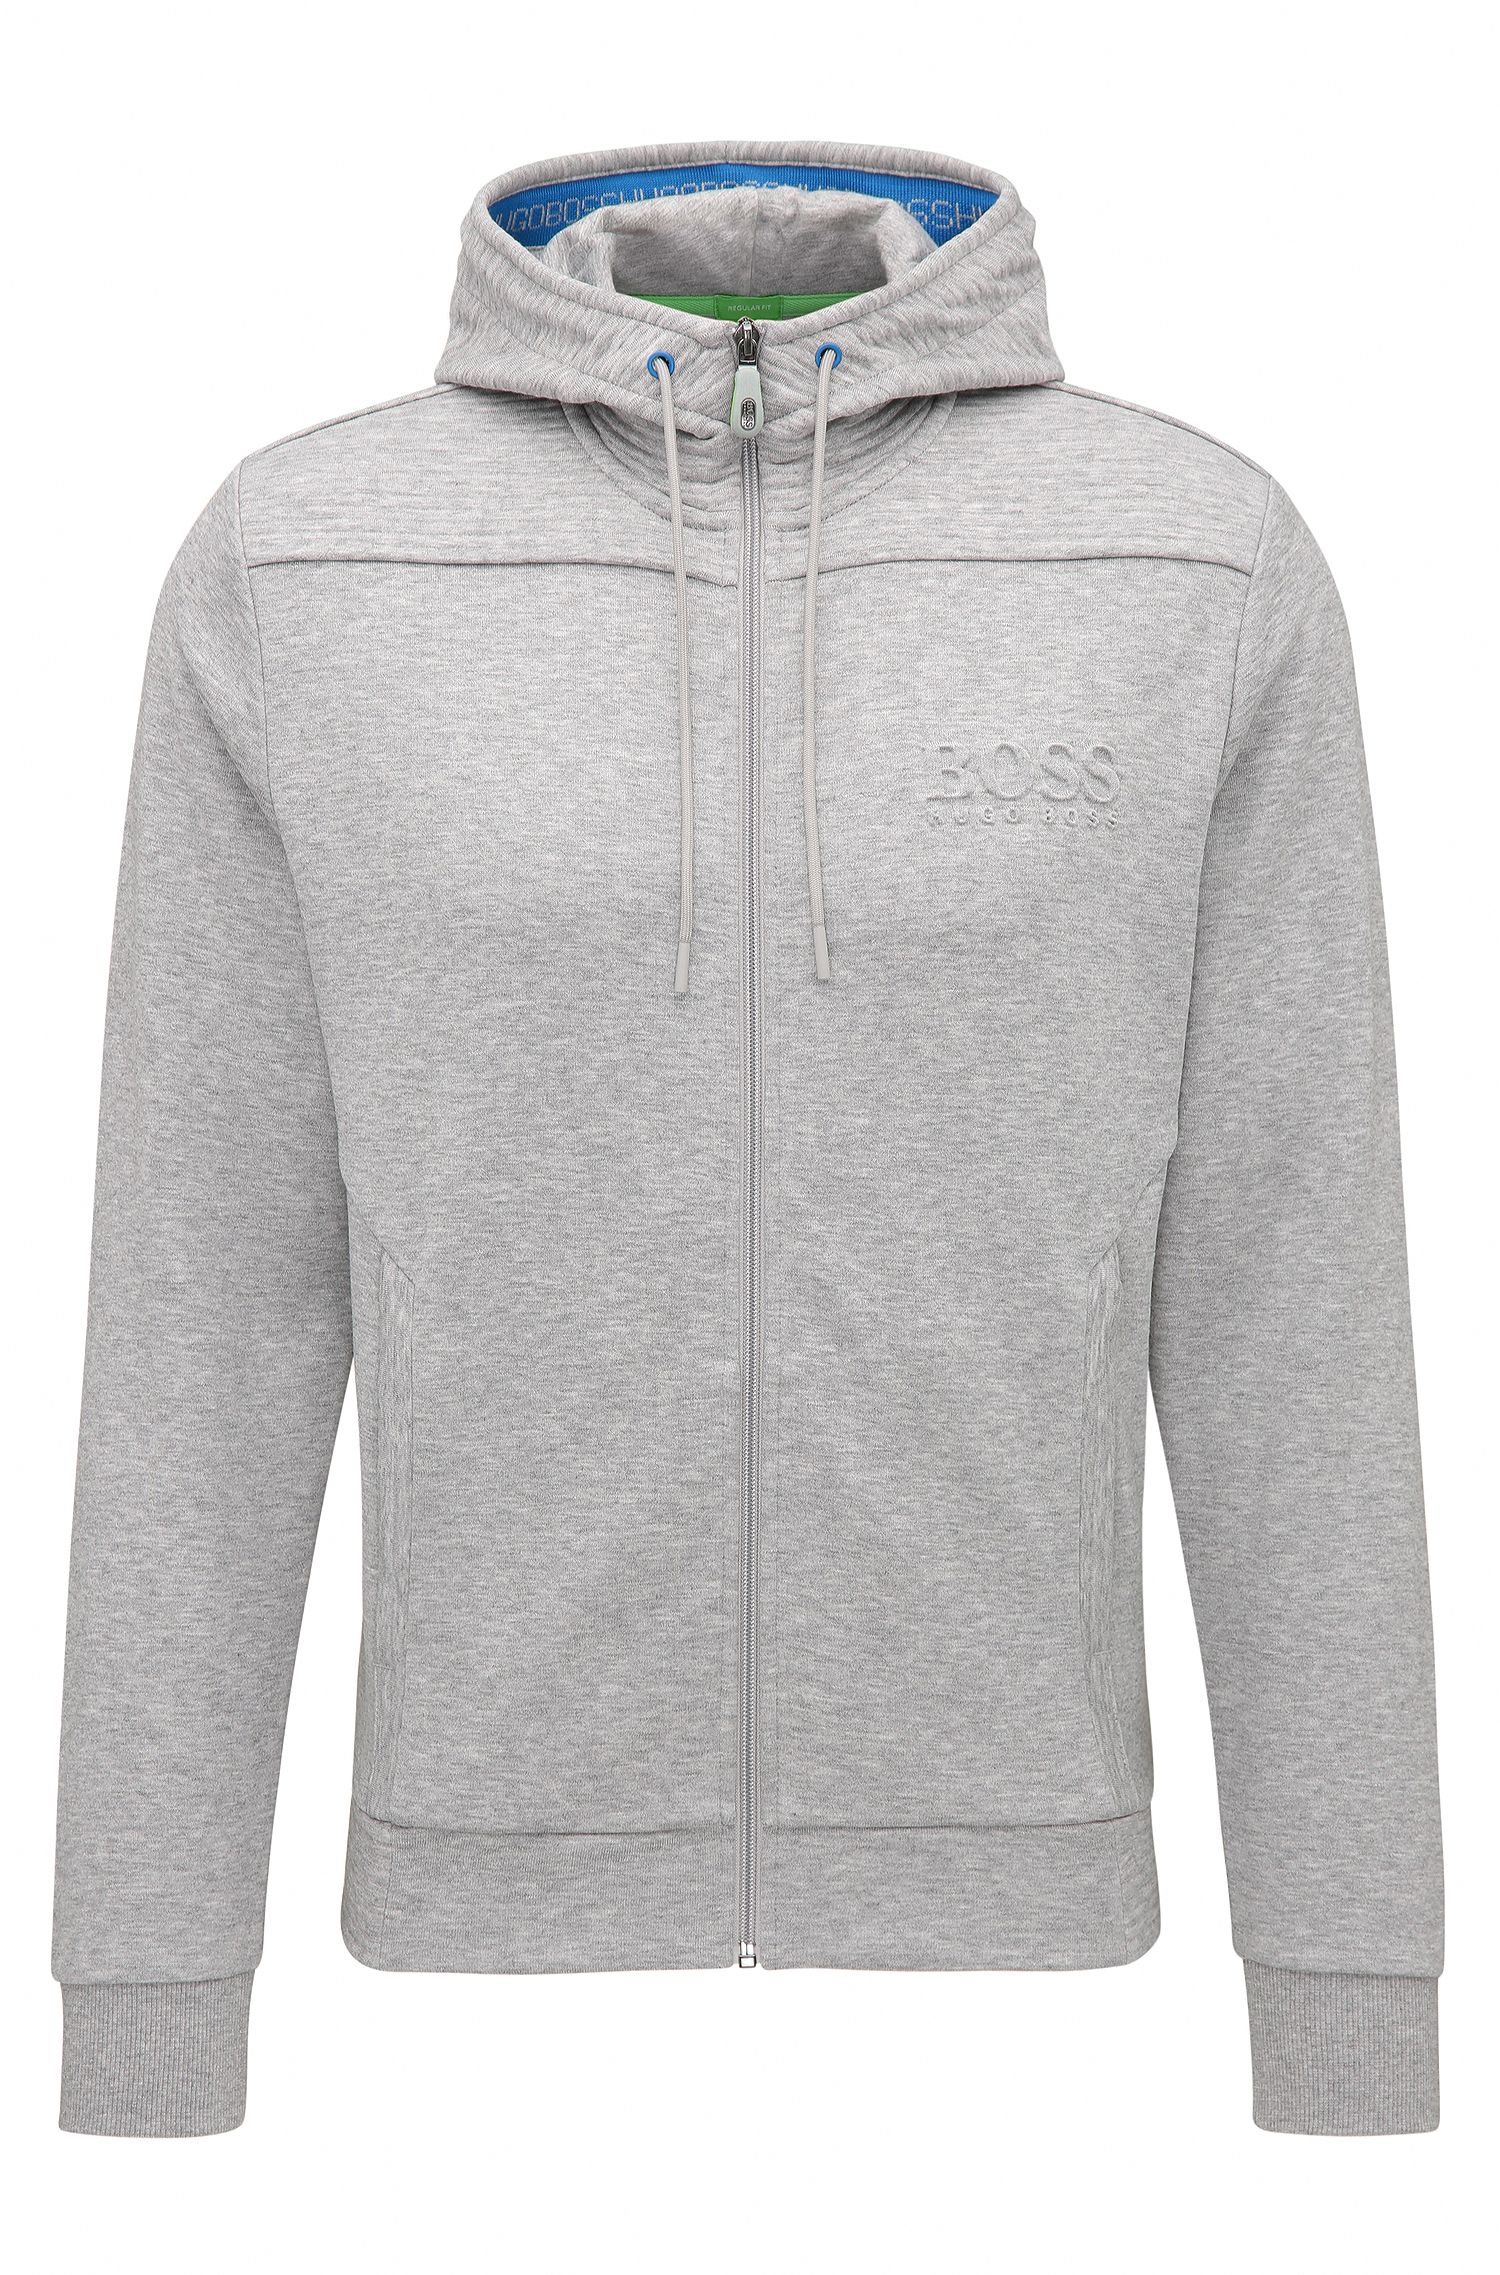 Regular-fit hooded sweatshirt in cotton blend